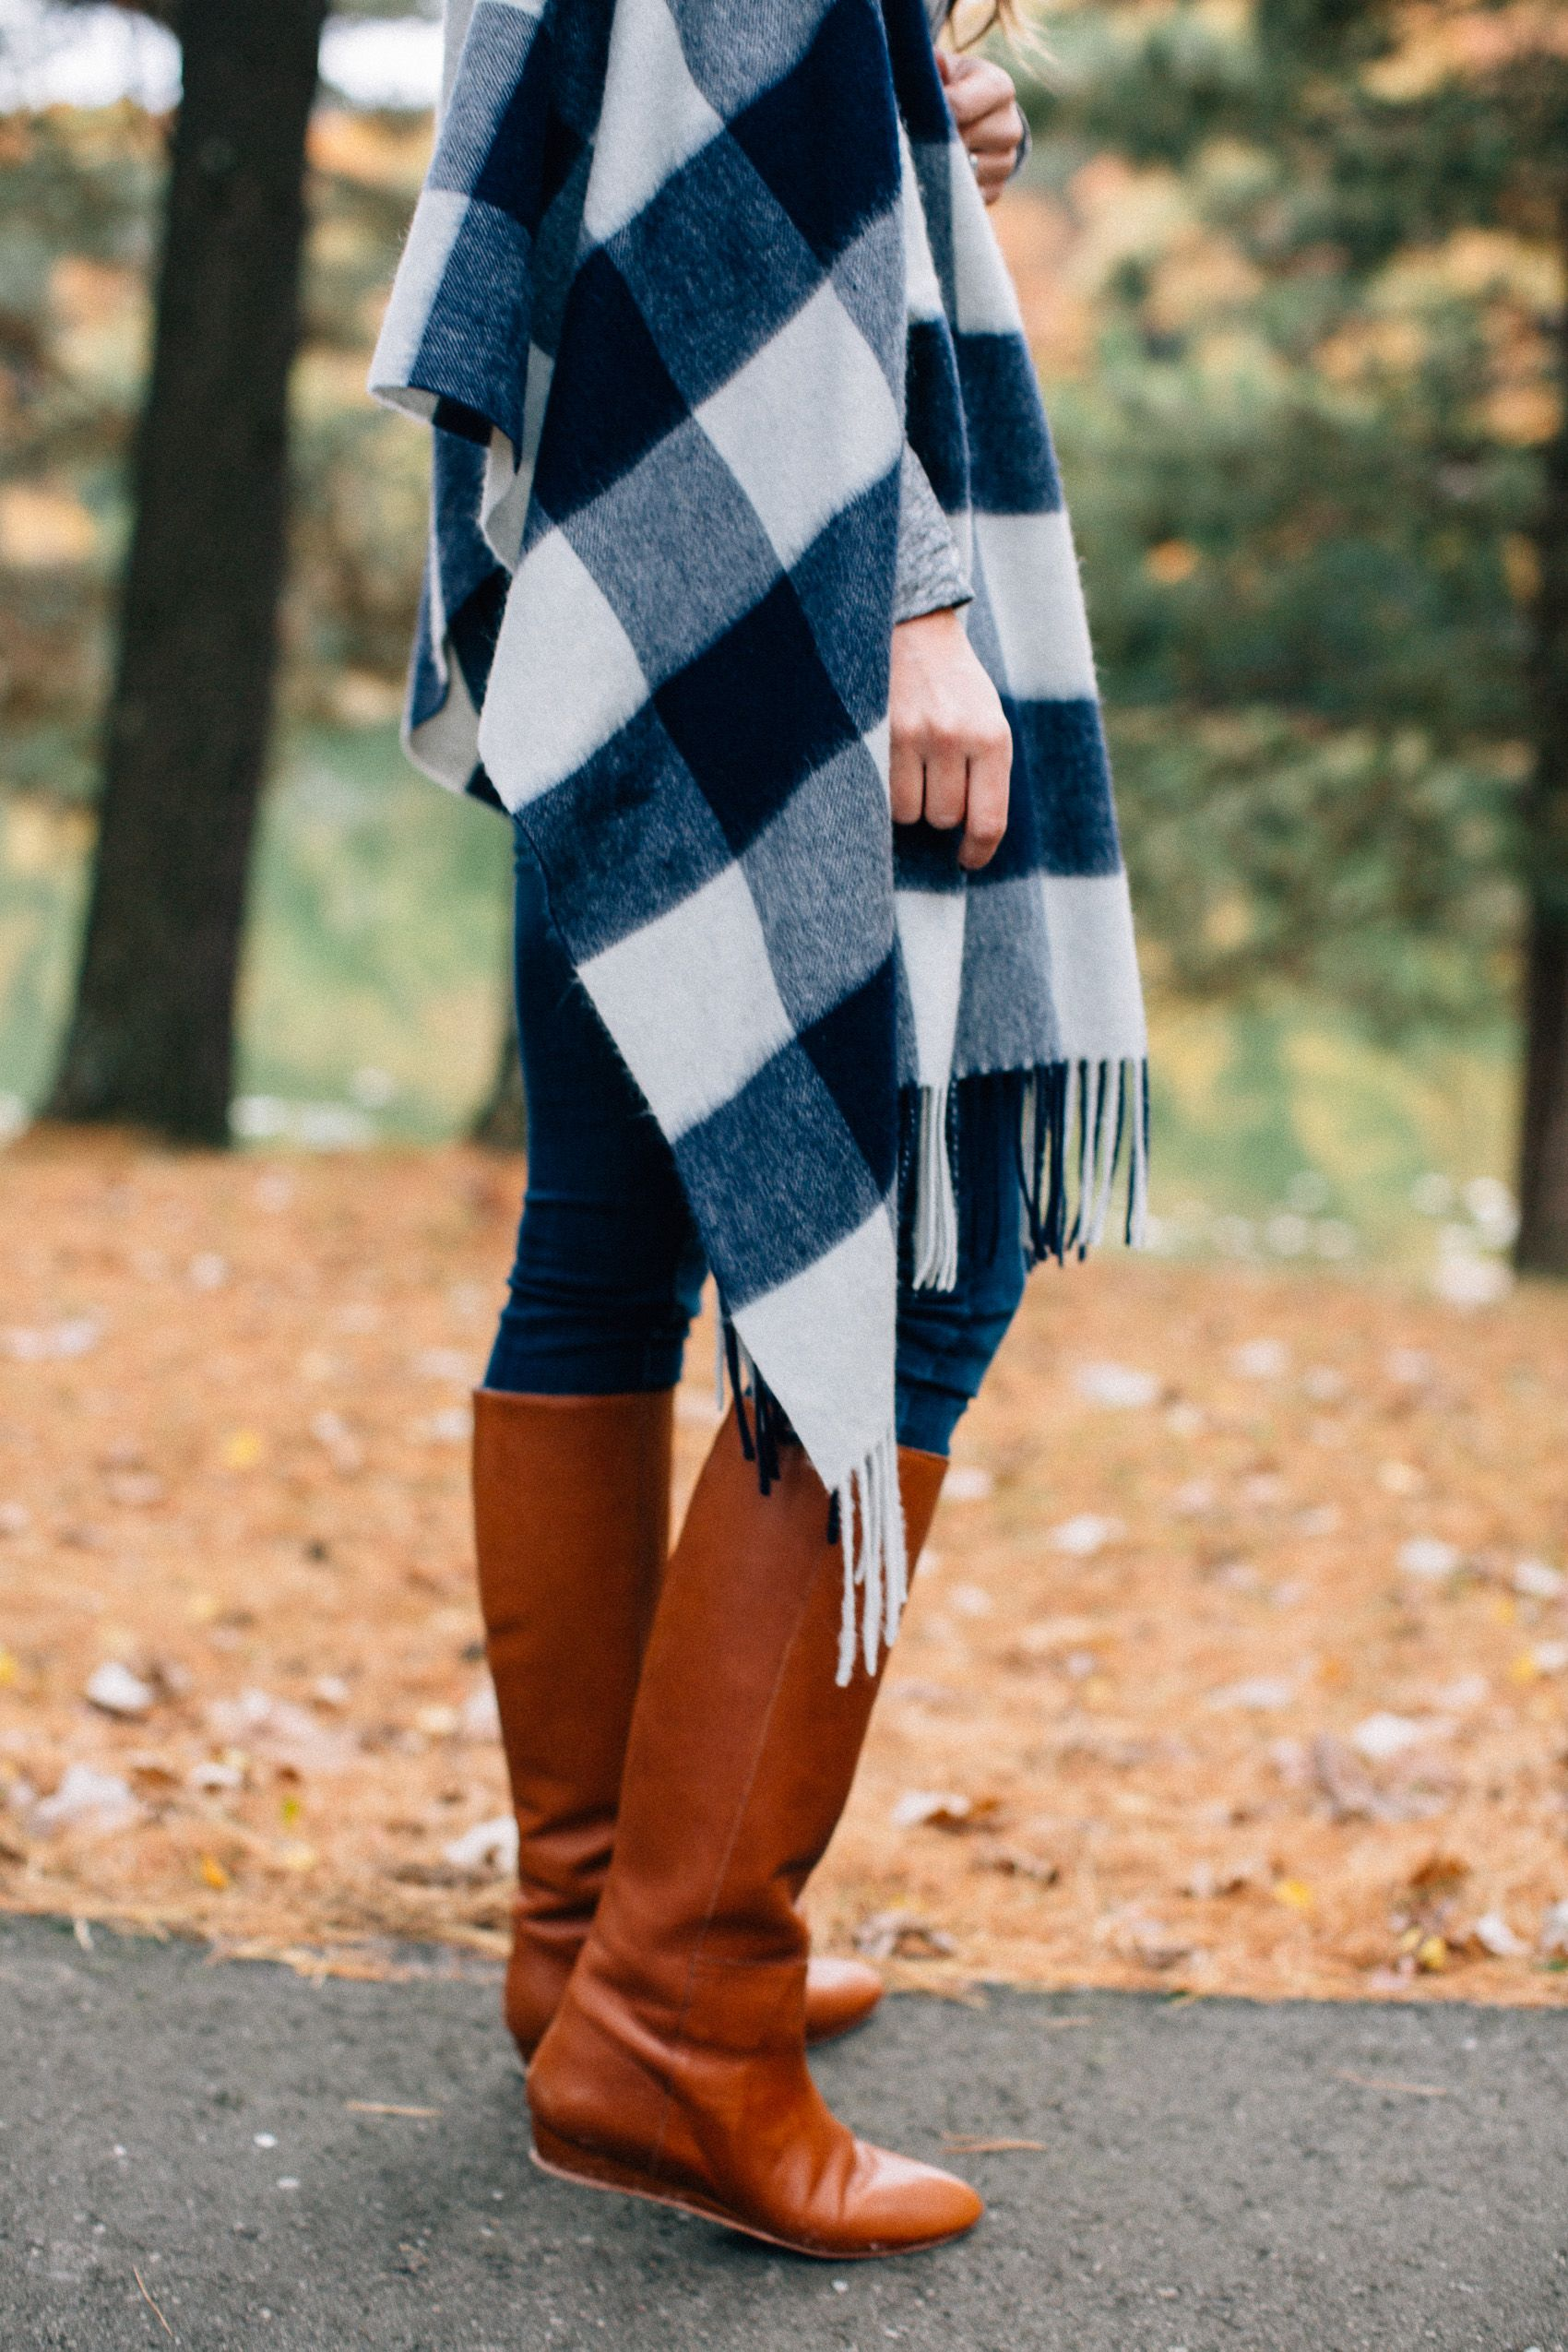 the best brown riding boots for fall #fall #ridingboots #plaid